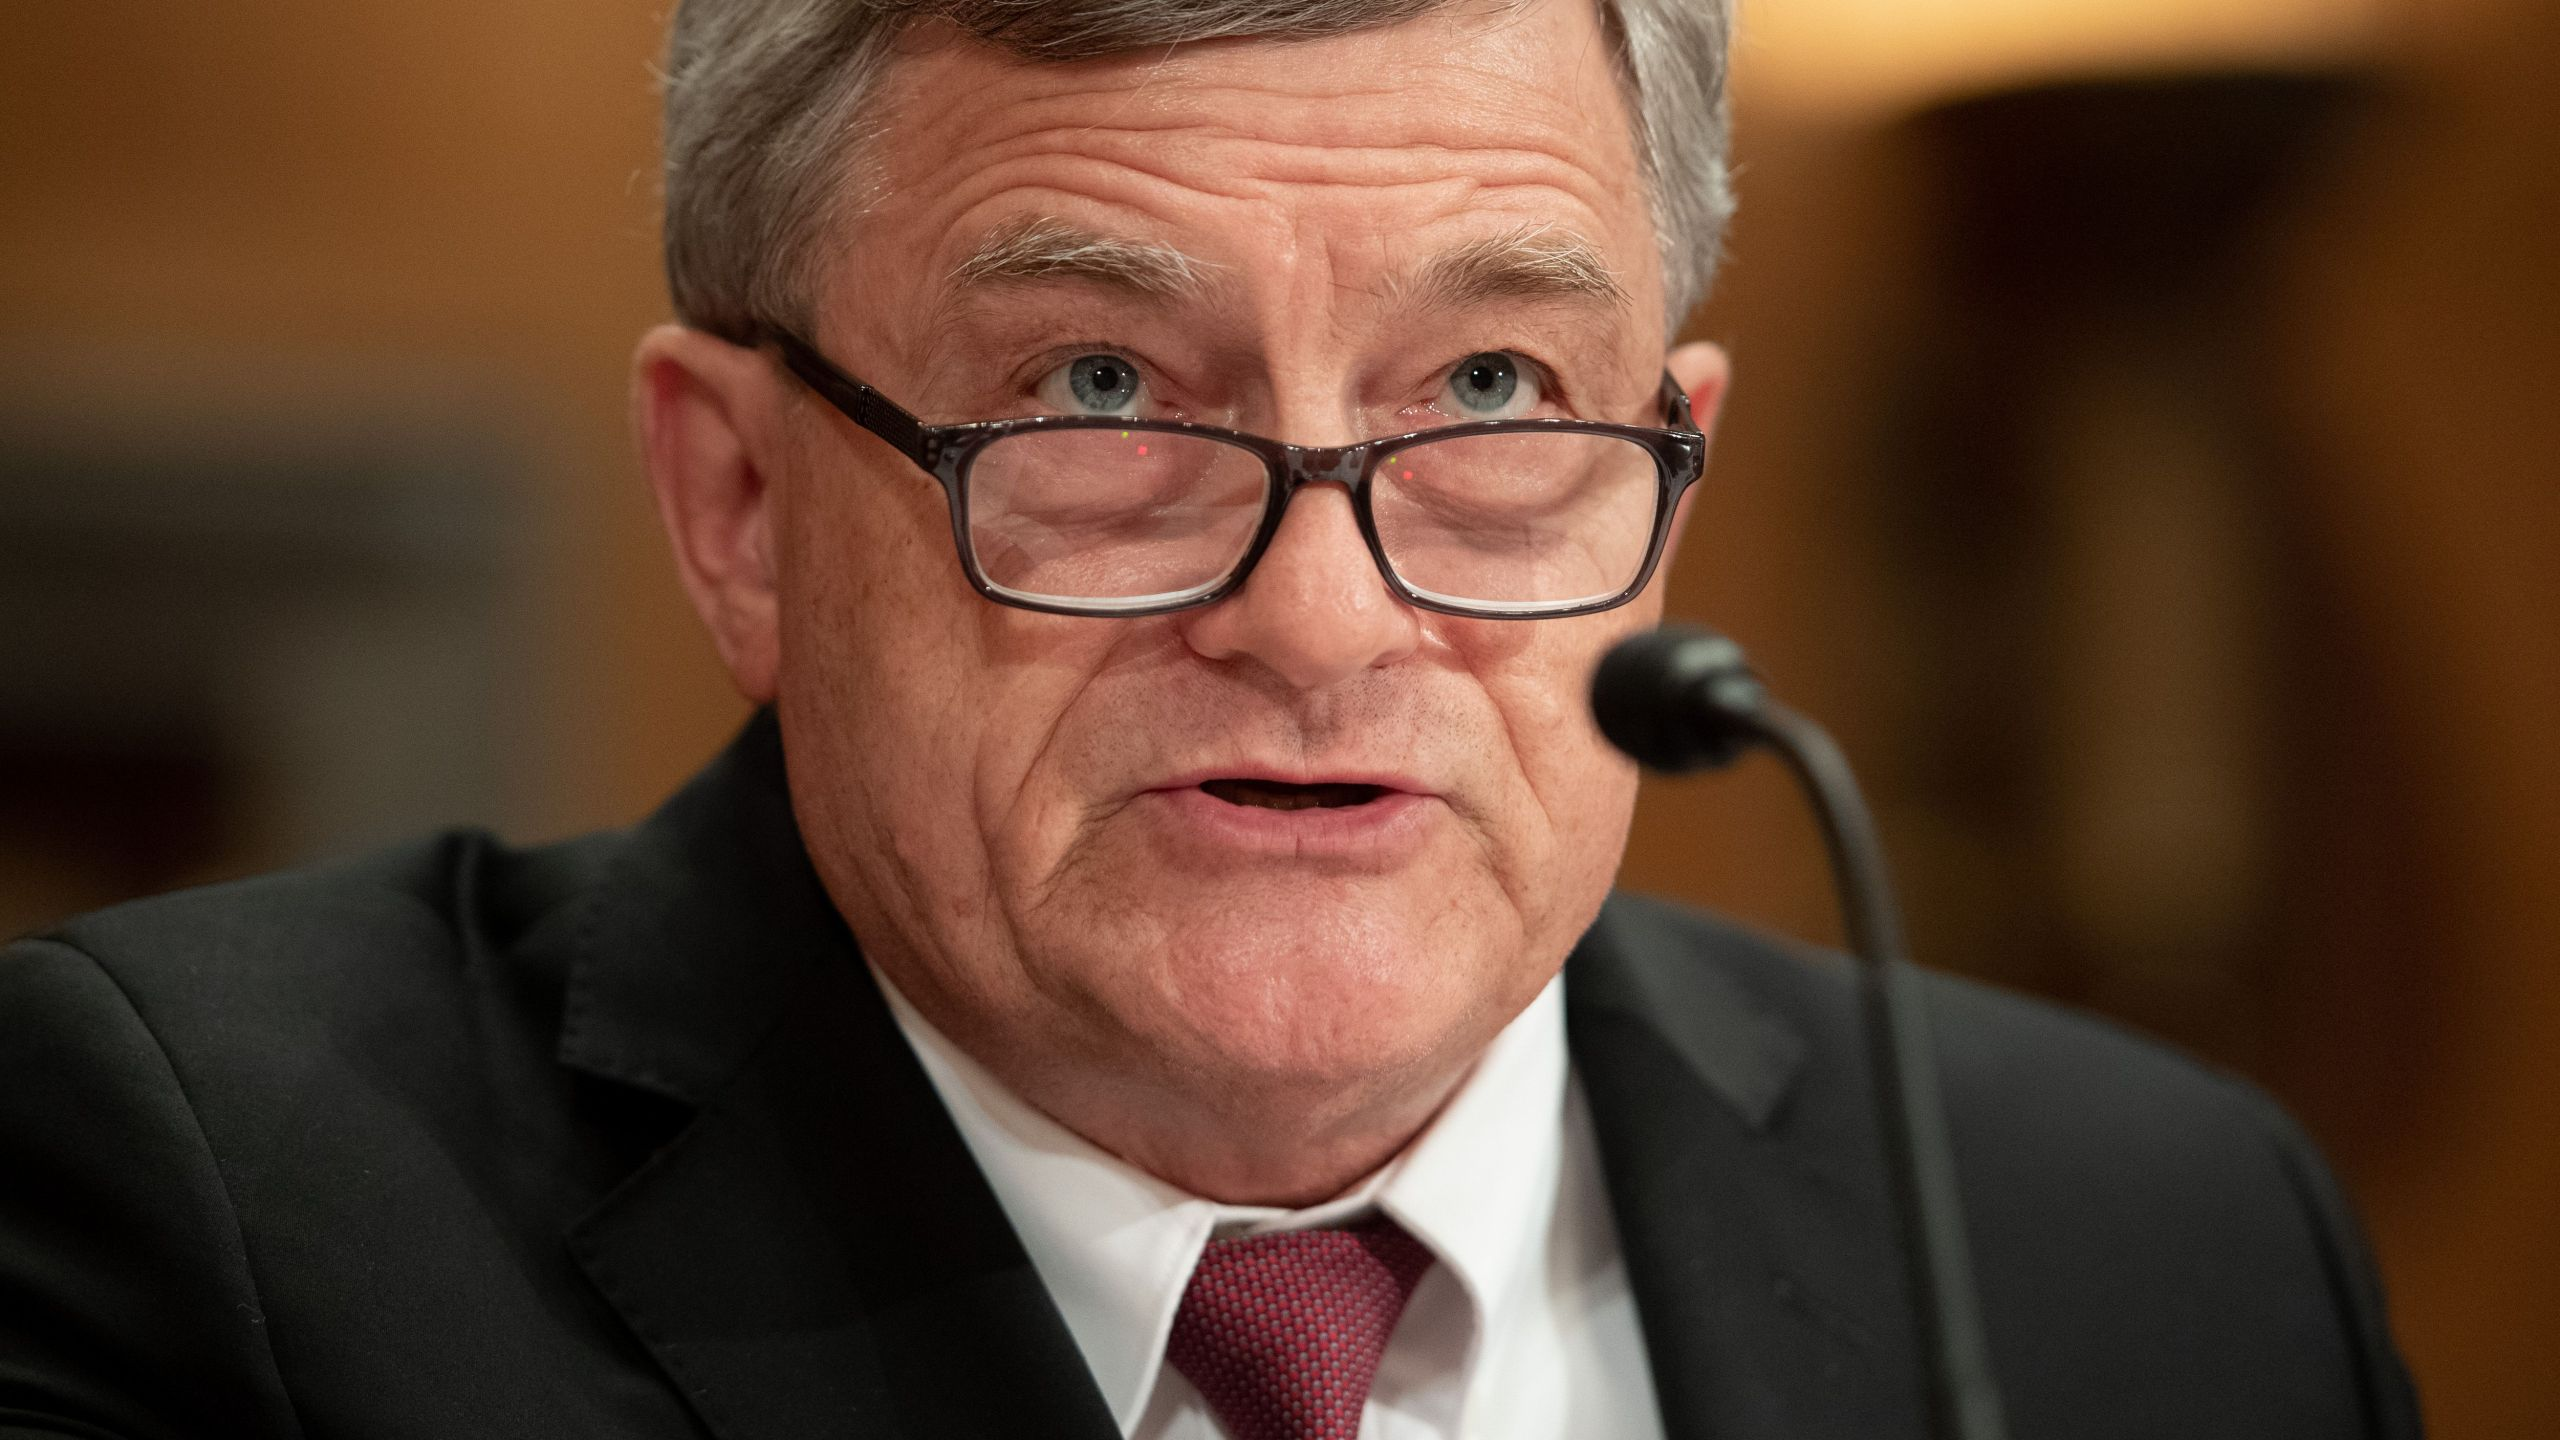 U.S. Census Bureau Director Steven Dillingham testifies about the 2020 Census during a Senate Homeland Security and Governmental Affairs Committee hearing on Capitol Hill in Washington, D.C., July 16, 2019. (Credit: SAUL LOEB/AFP/Getty Images)